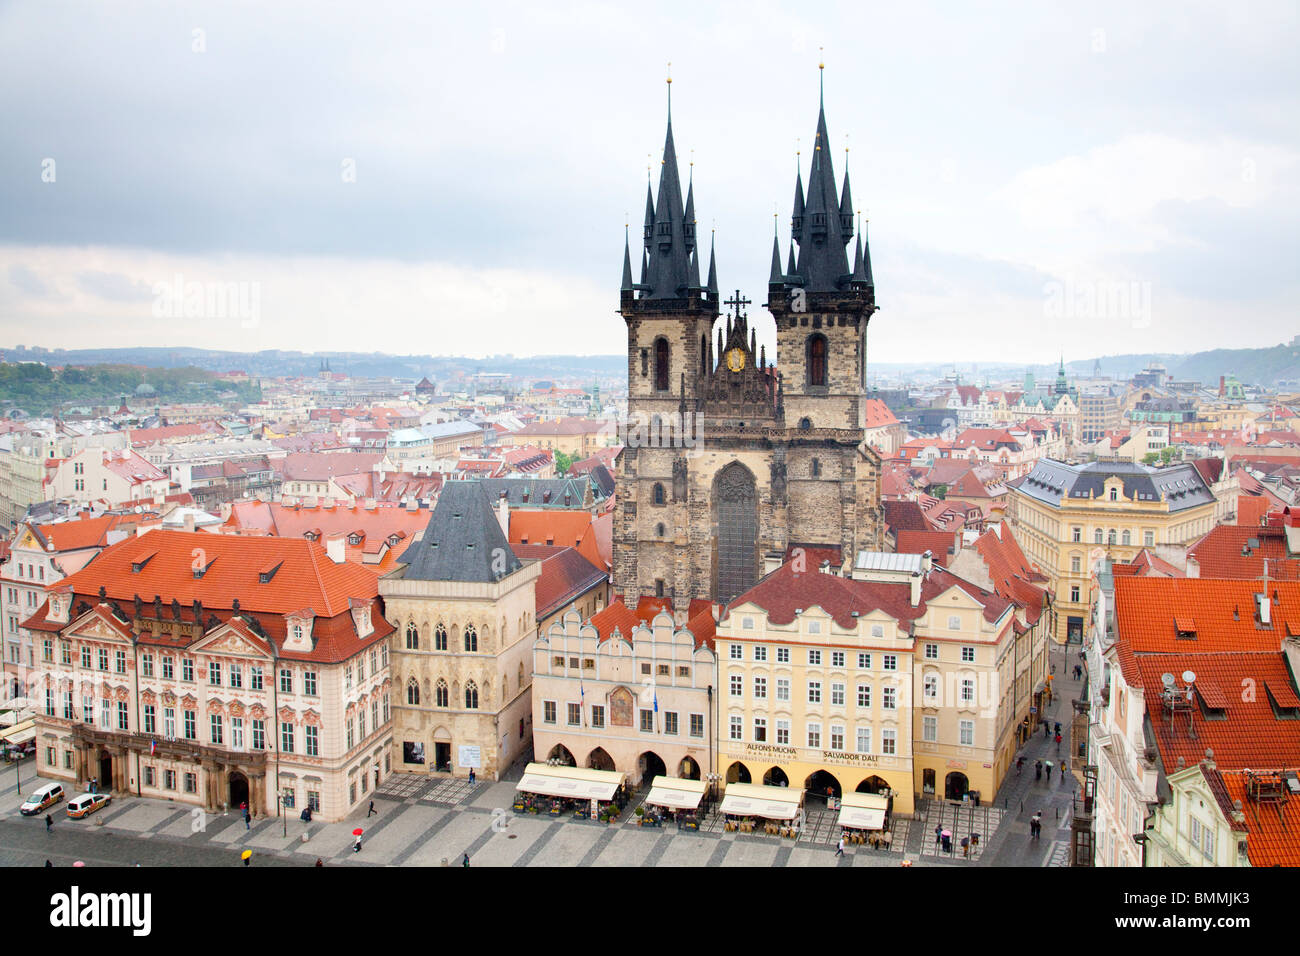 Old town square seen from the tower of the old Town Hall, Prague Czech Republic 2010 - Stock Image